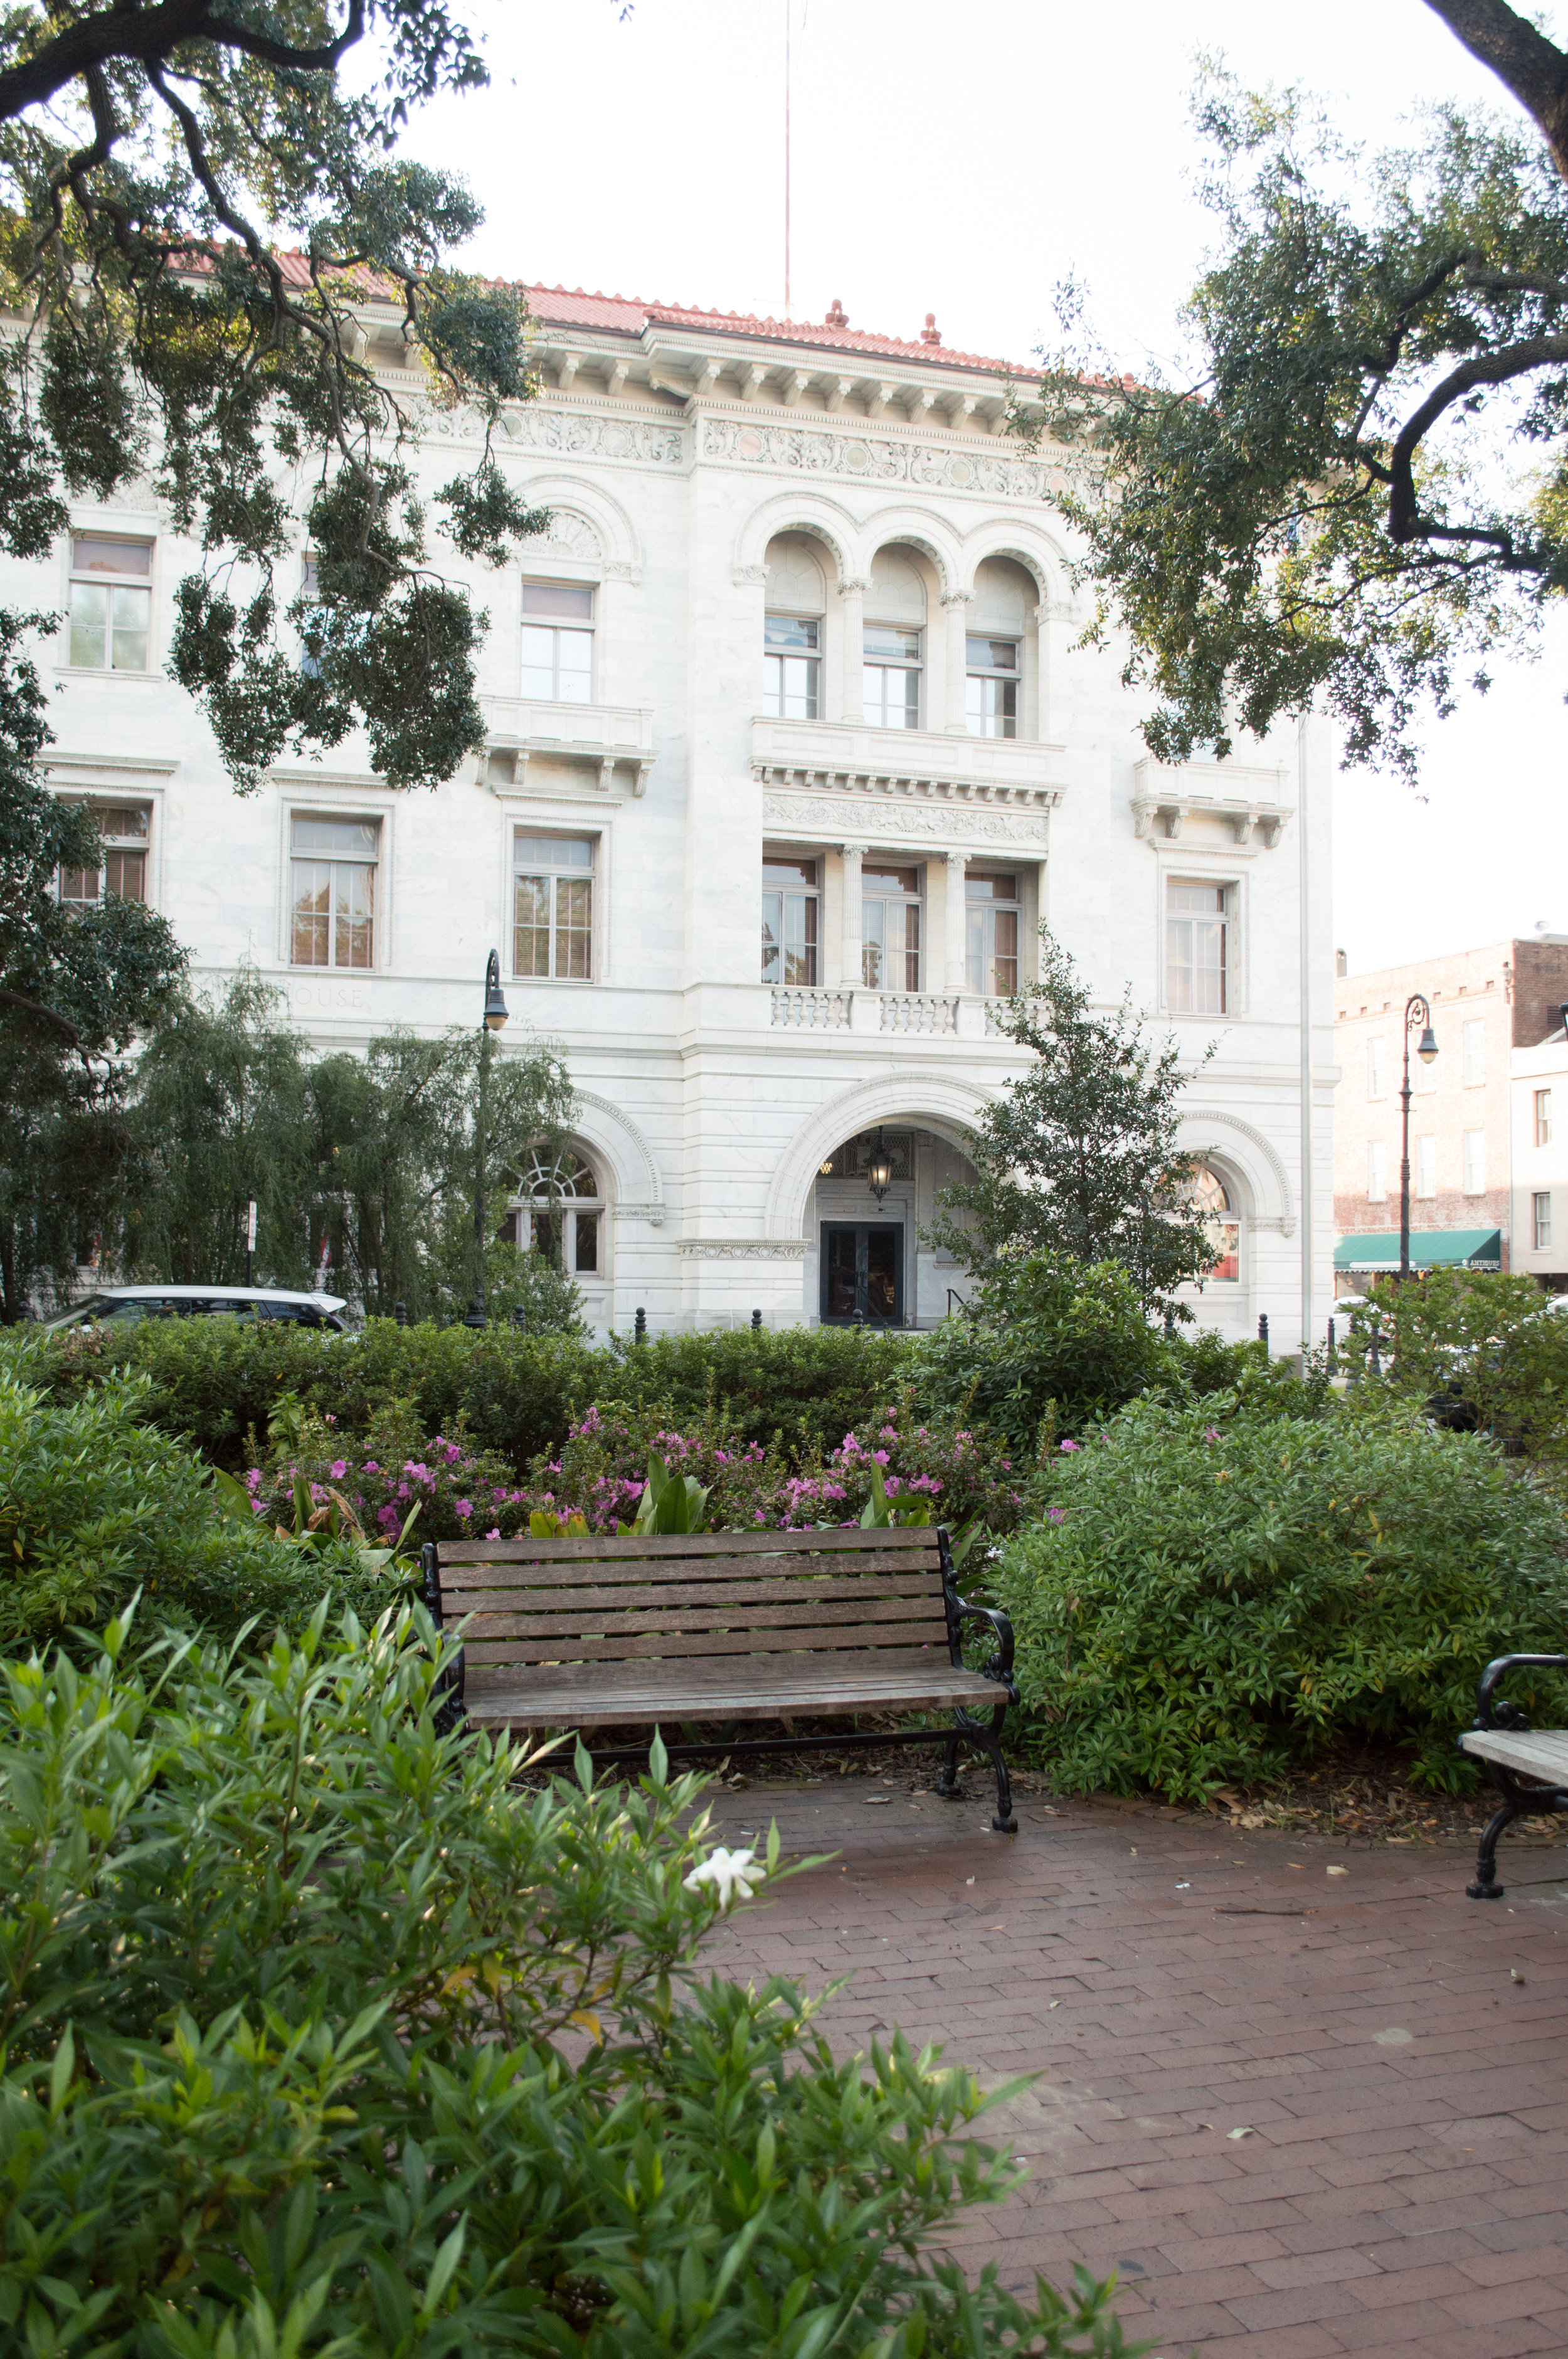 Savannah, GA is home to several different parks, each one of them unique and beautiful in its own way. We loved touring the city and walking around through all of them!